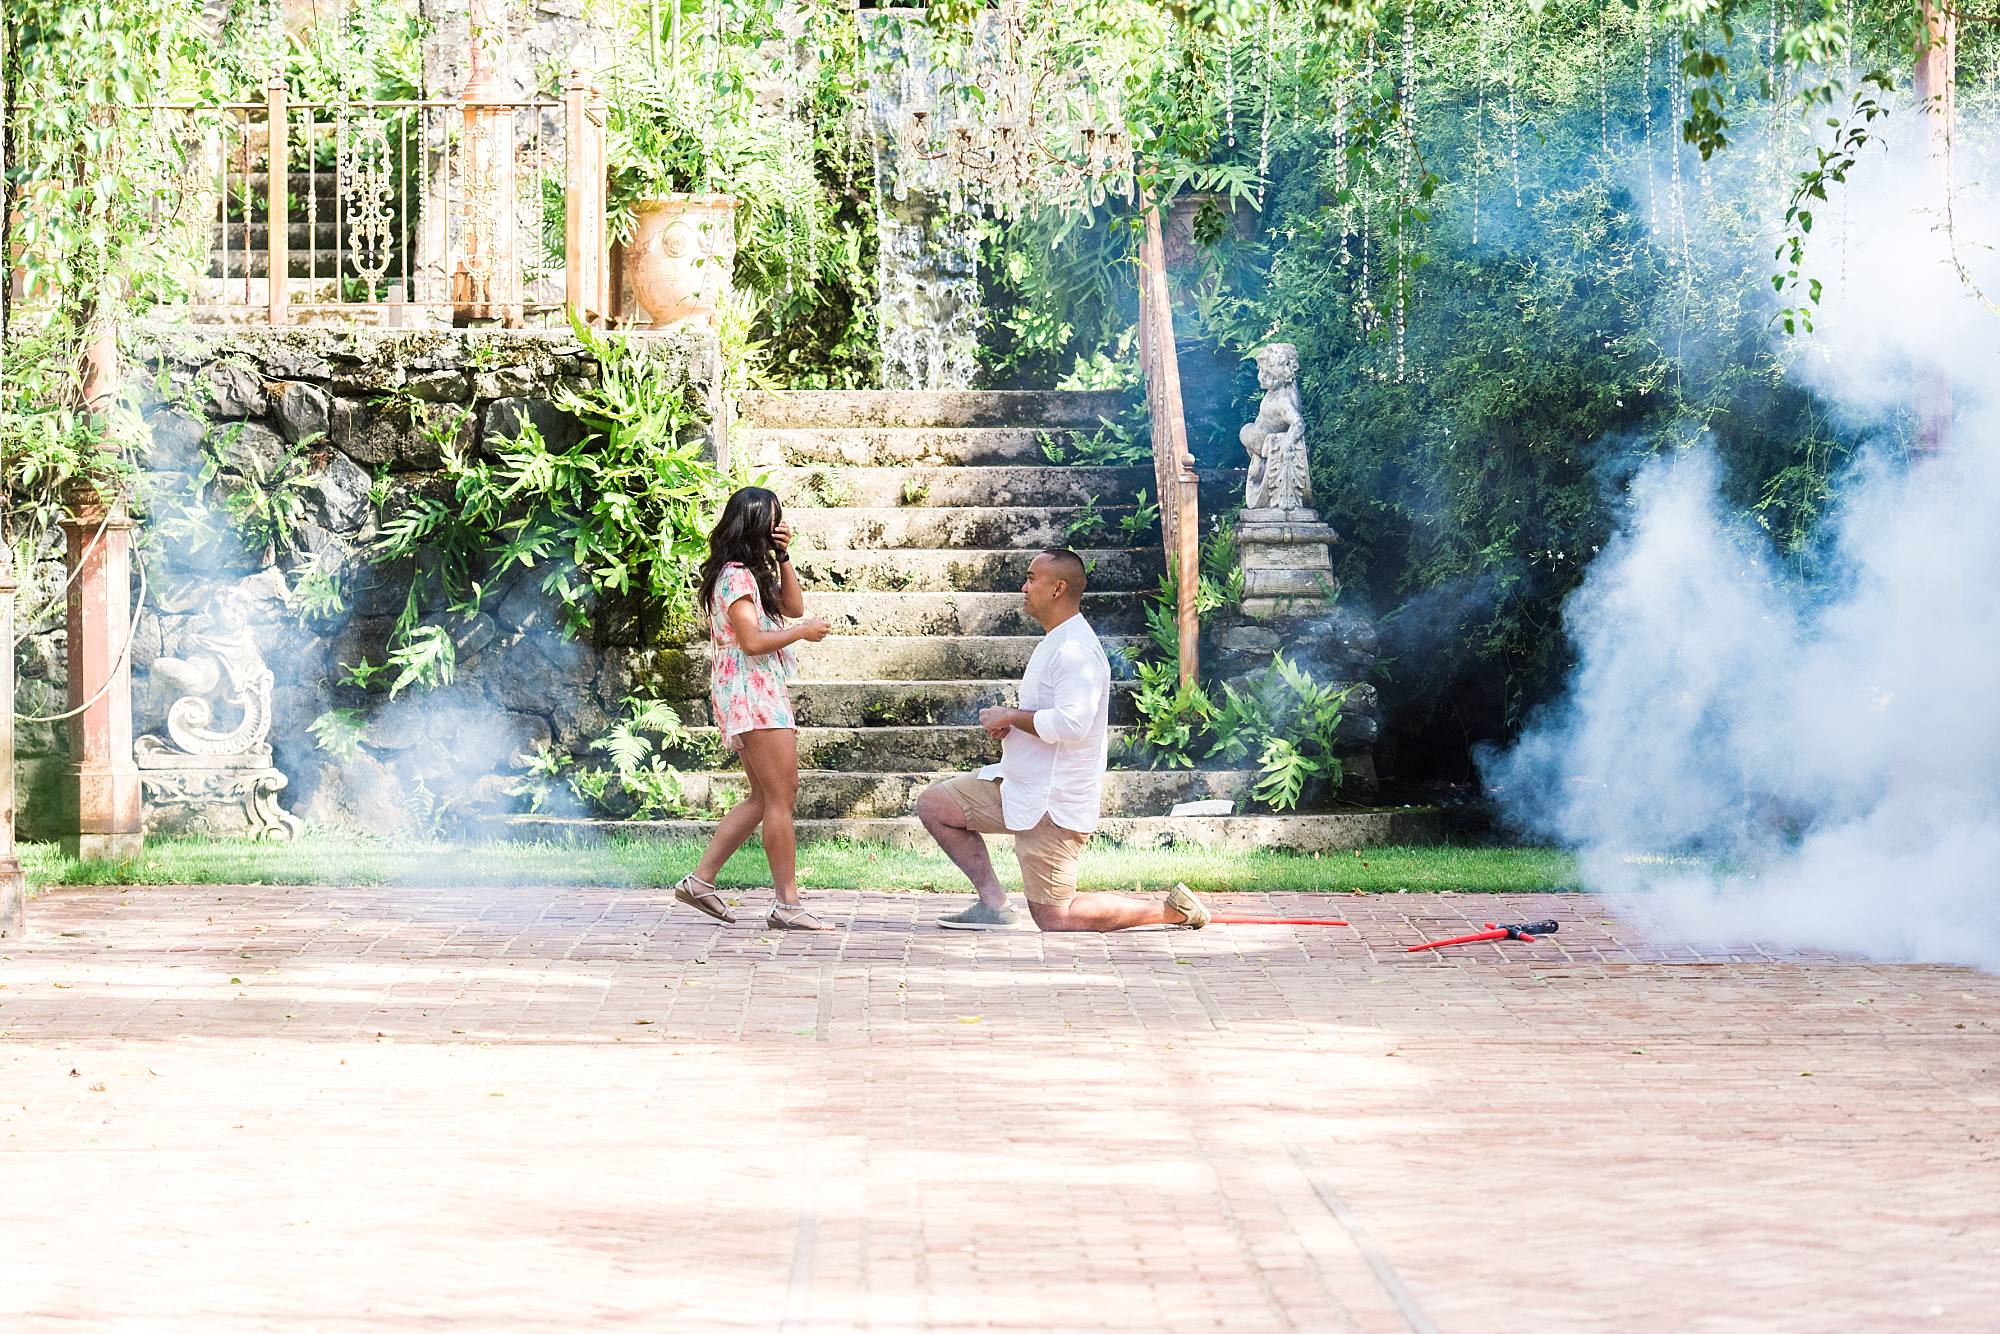 man proposing to his girlfriend at haiku mill, stairs in the background and smoke from smoke machine